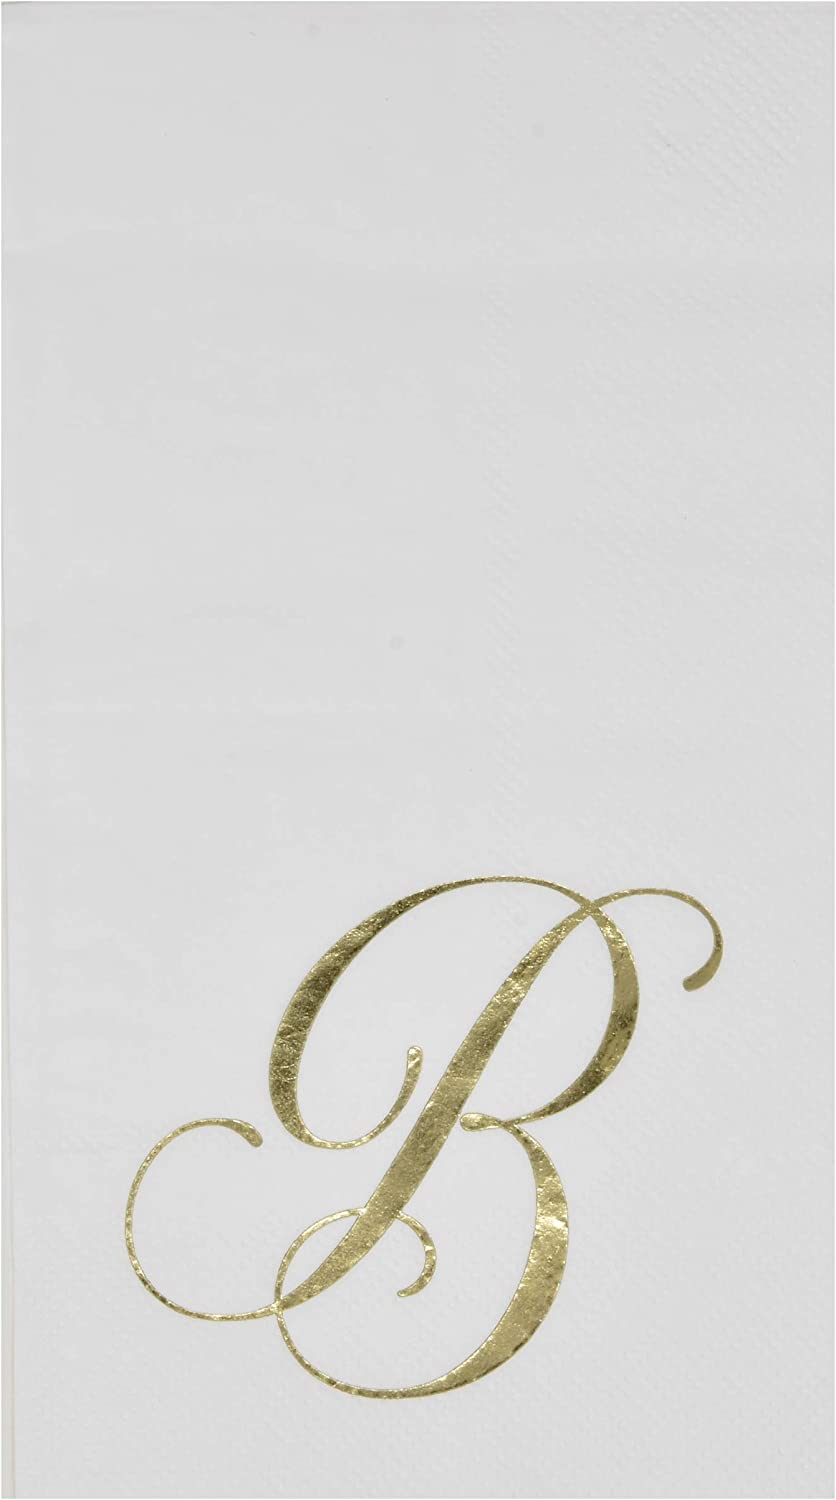 100 Gold Monogram Guest Napkins Letter B Disposable Paper Pack Elegant Metallic Golden Foil Dinner Hand Napkin for Bathroom Powder Room Wedding Holiday Birthday Party Baby Shower Decorative Towels